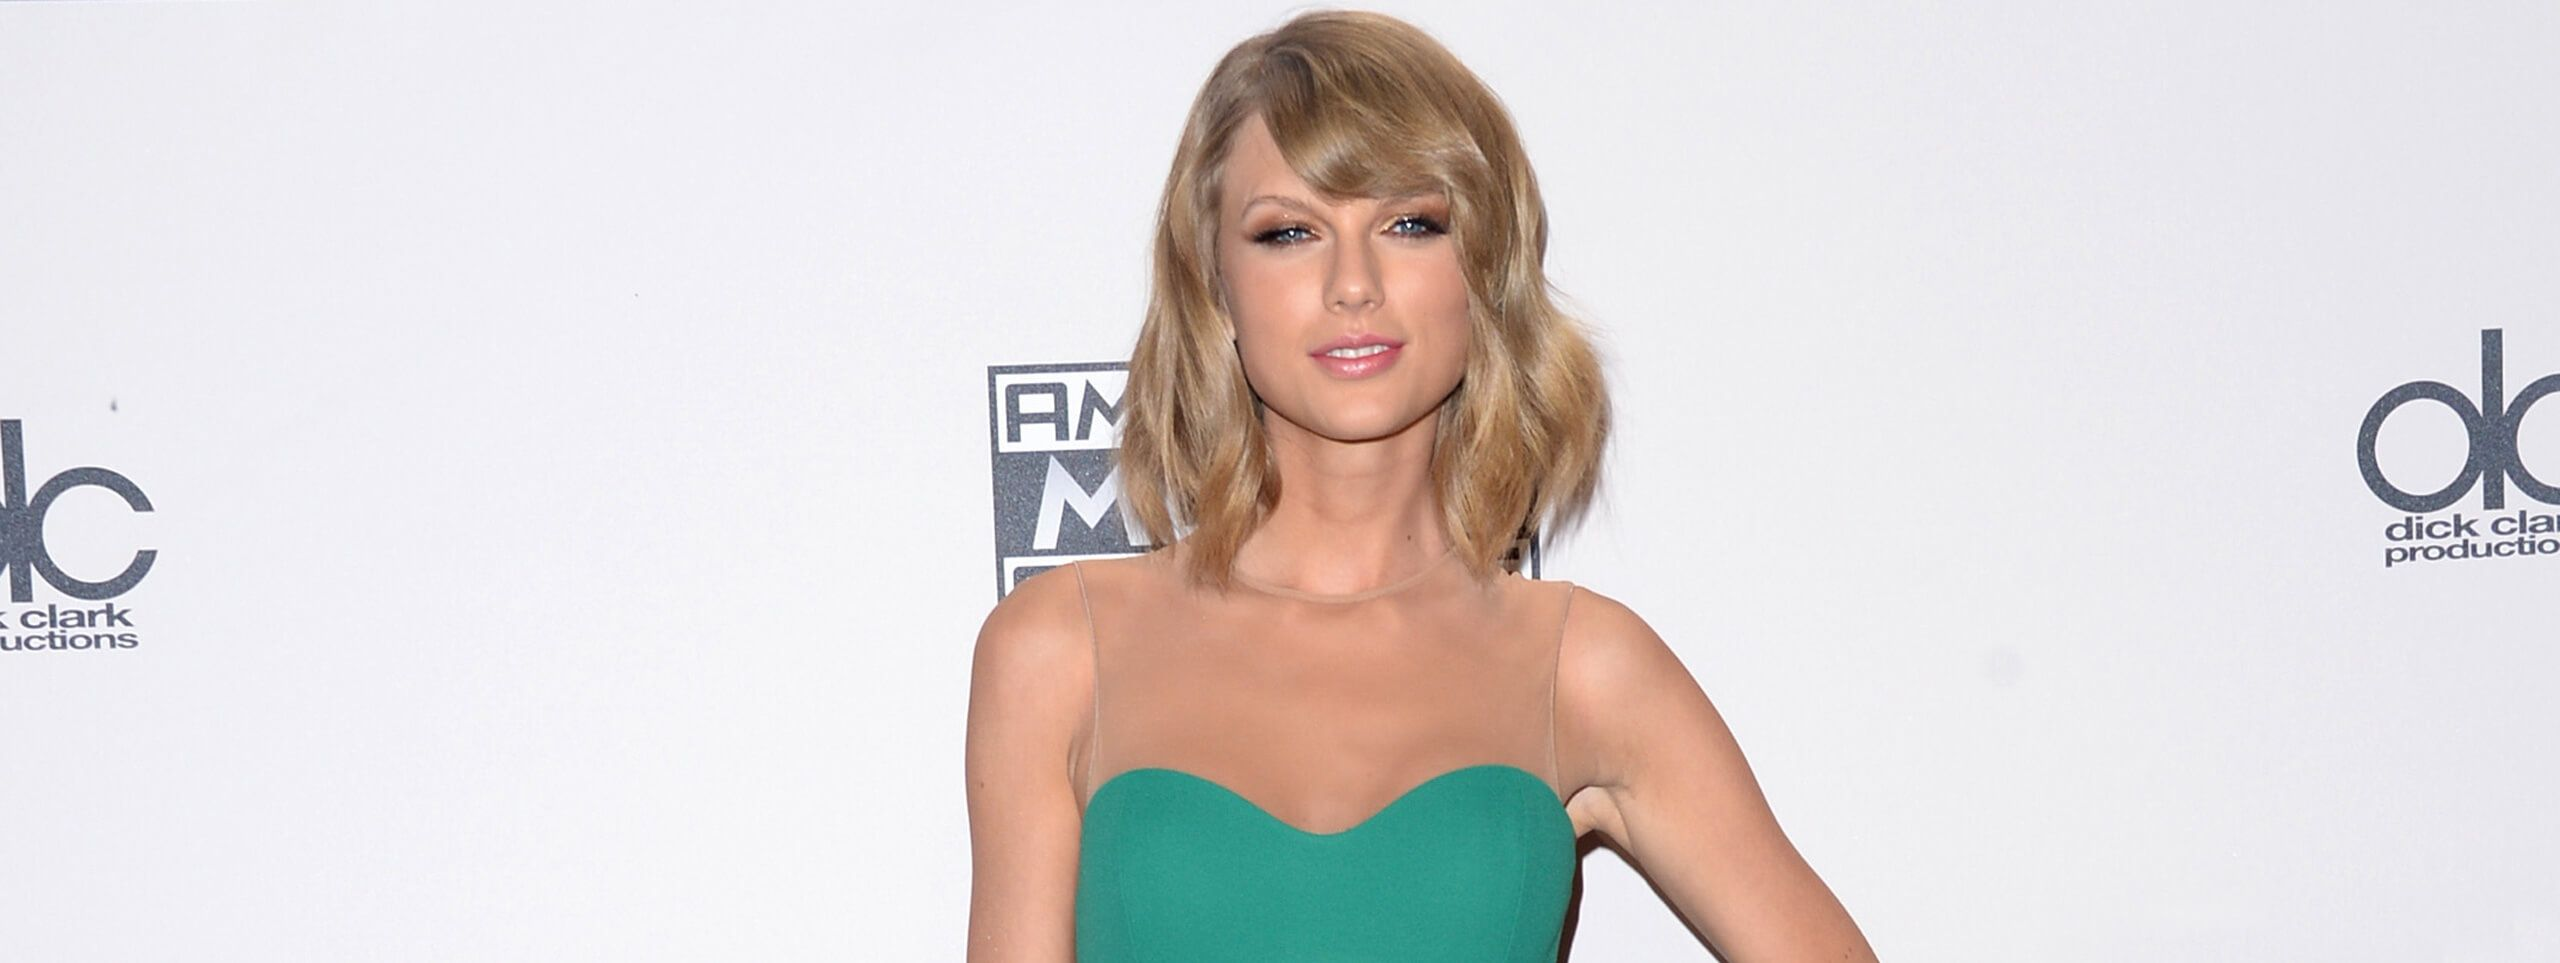 Taylor Swift Clavi Cut